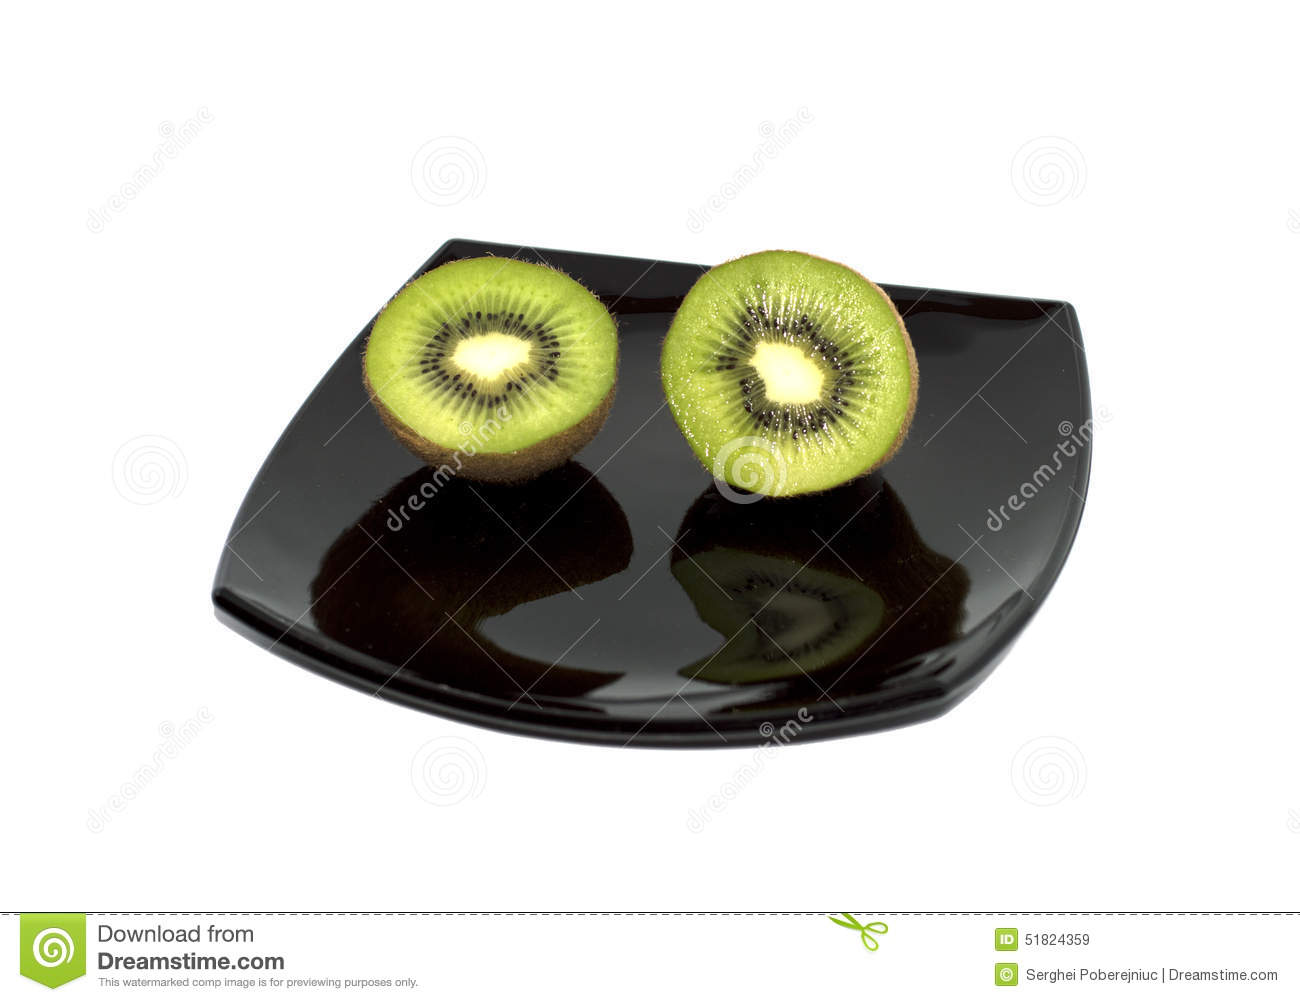 Two kiwis on a black plate, the top view